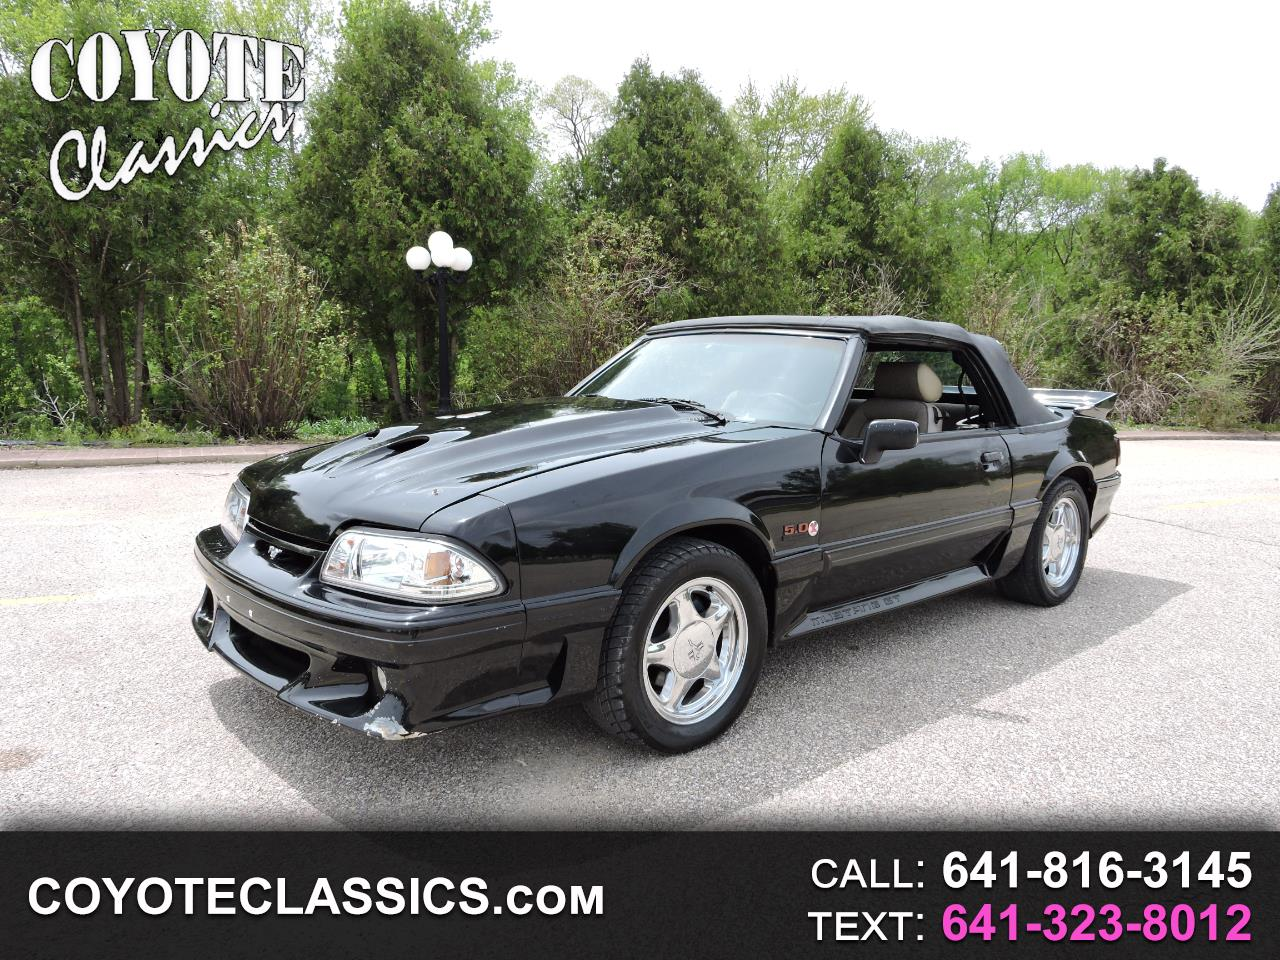 1988 Ford Mustang 2dr Conv GT